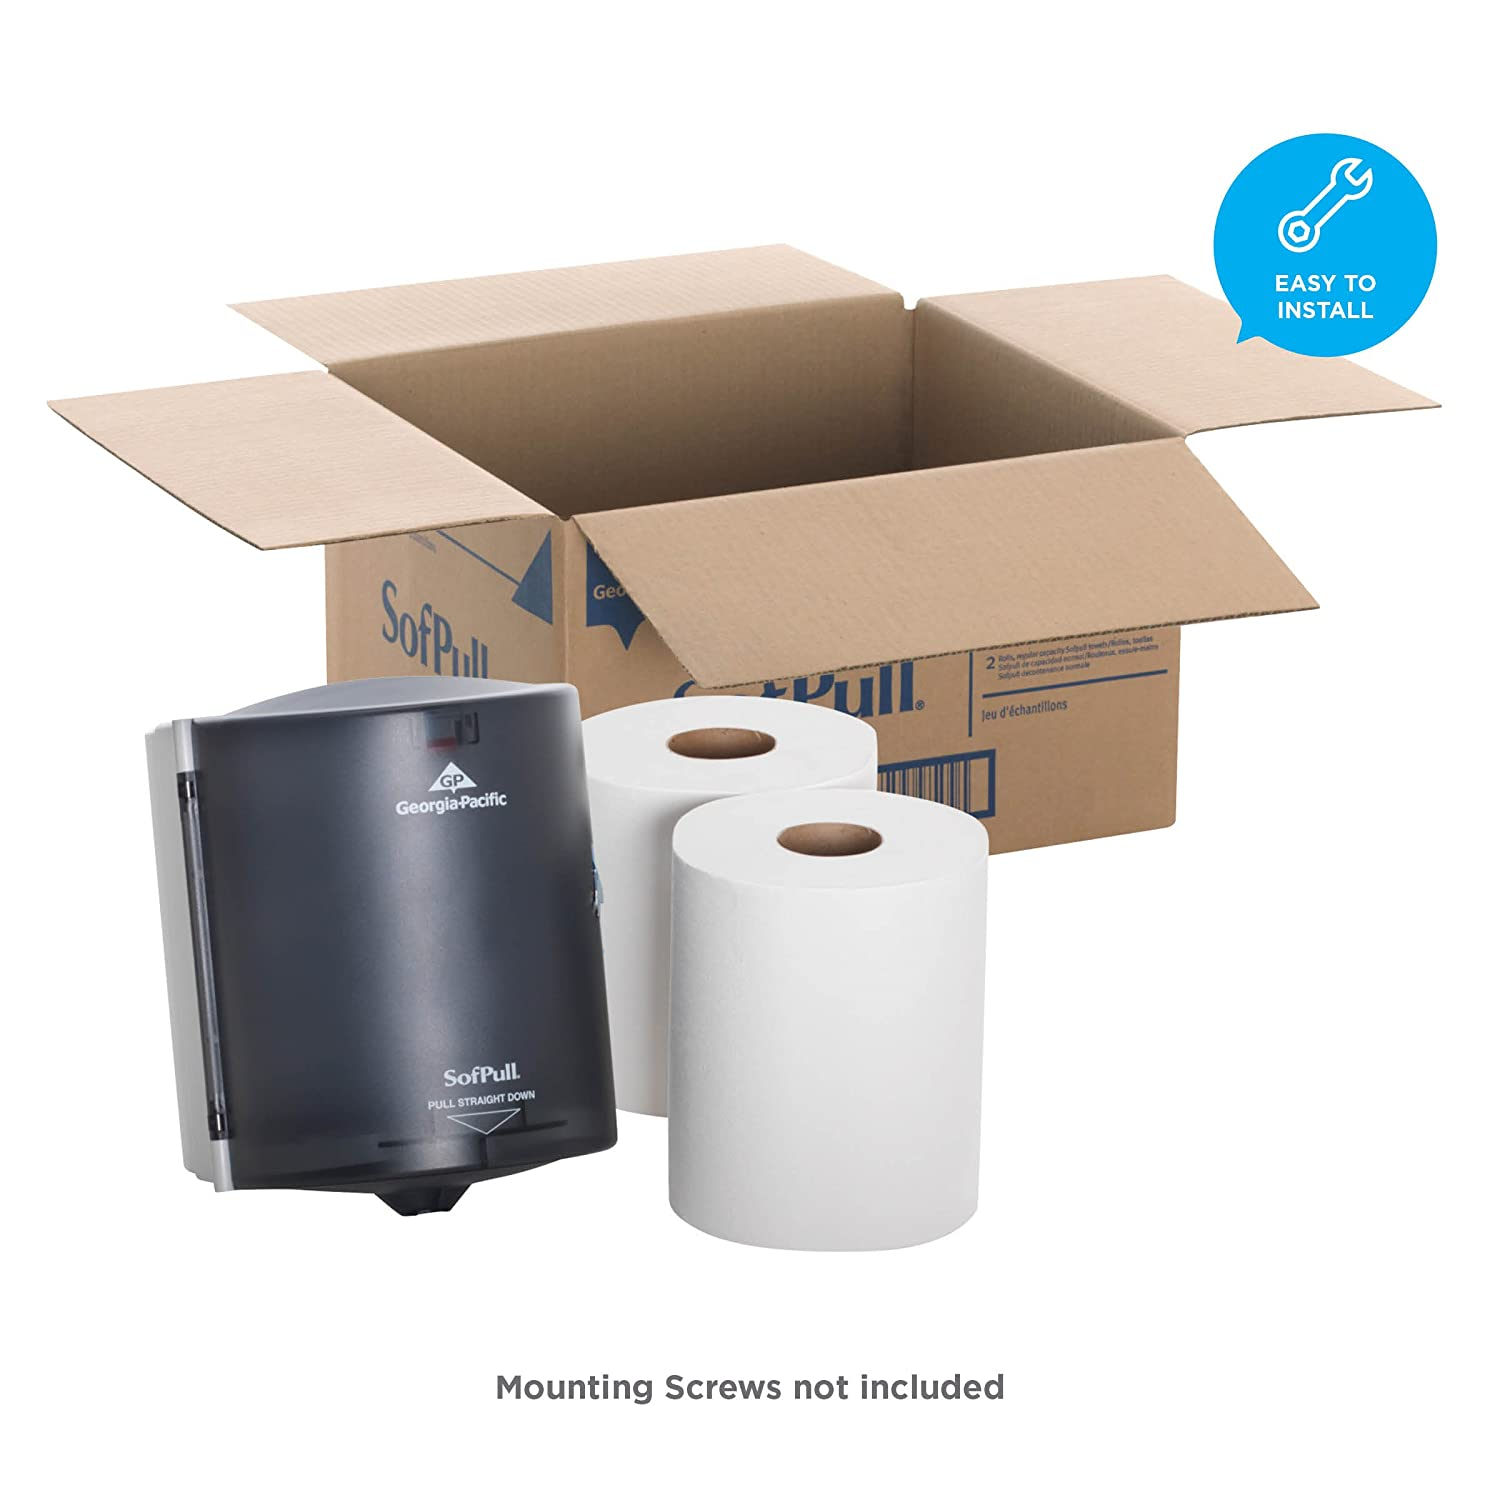 Georgia-Pacific SofPull 58205 Translucent Smoke Paper Towel Dispenser Trial Kit with 2 Rolls of Paper Towels by Georgia-Pacific: Amazon.es: Bricolaje y ...